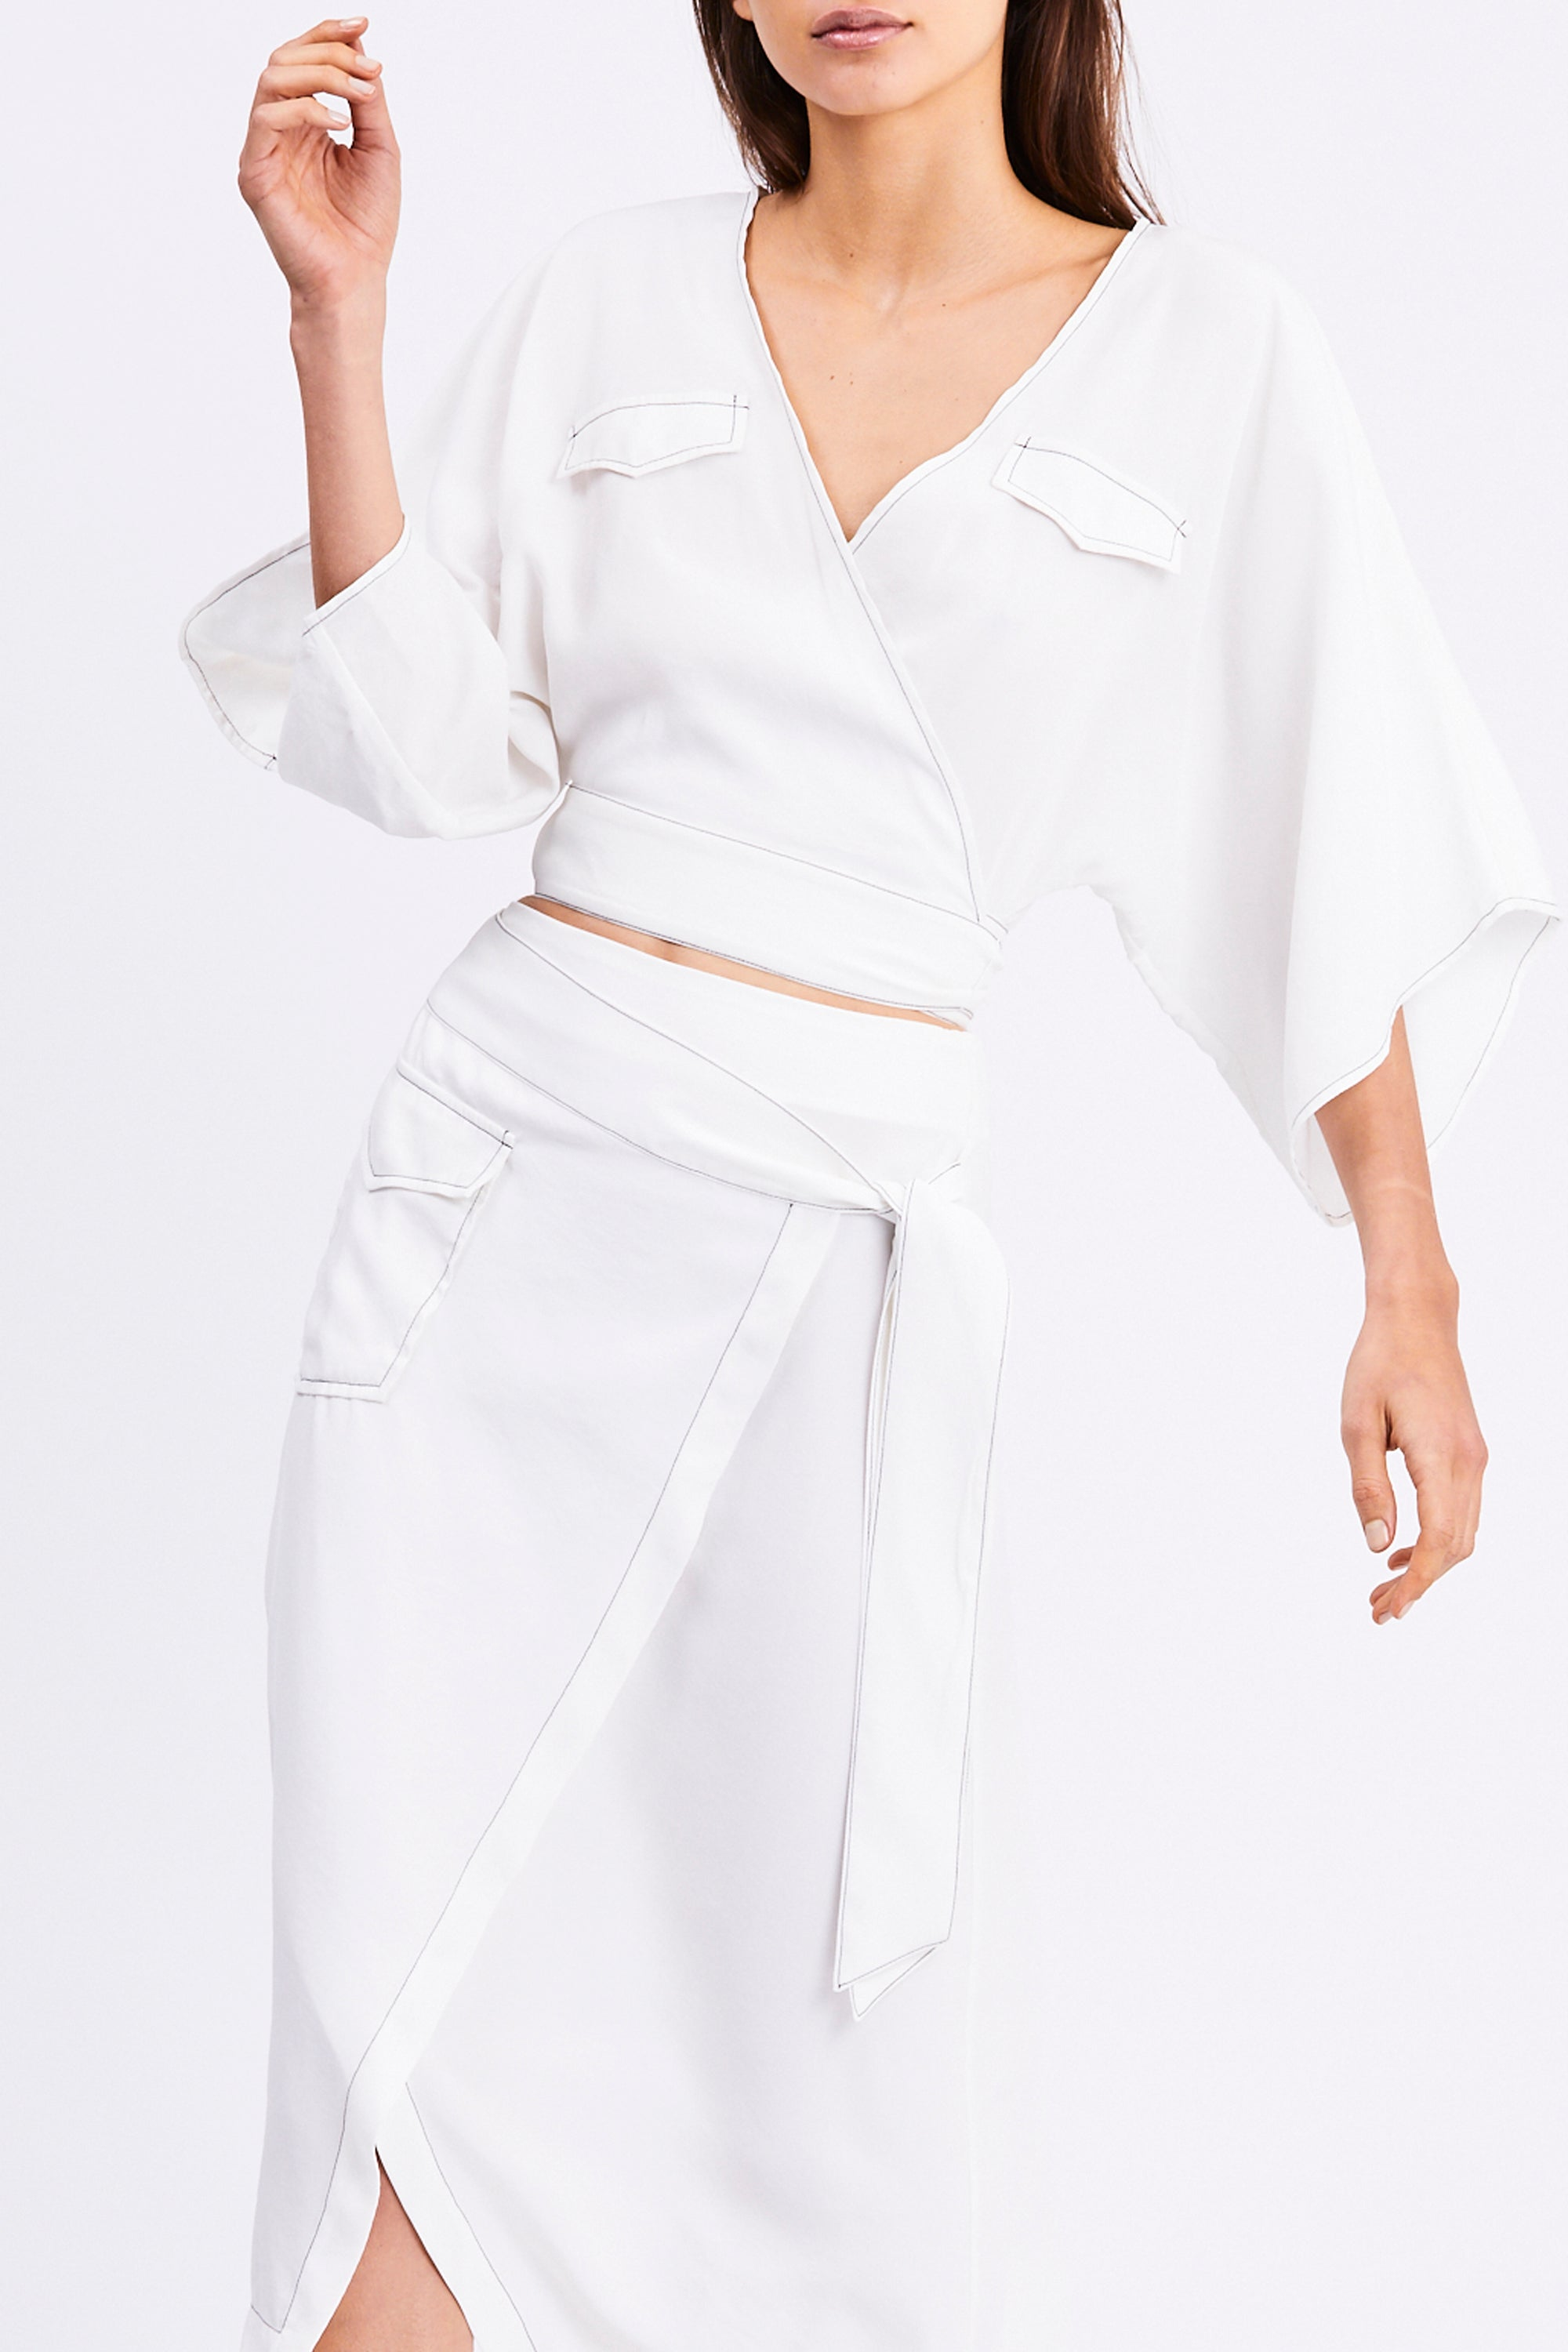 WESTERN WRAP SHIRT | OFF WHITE